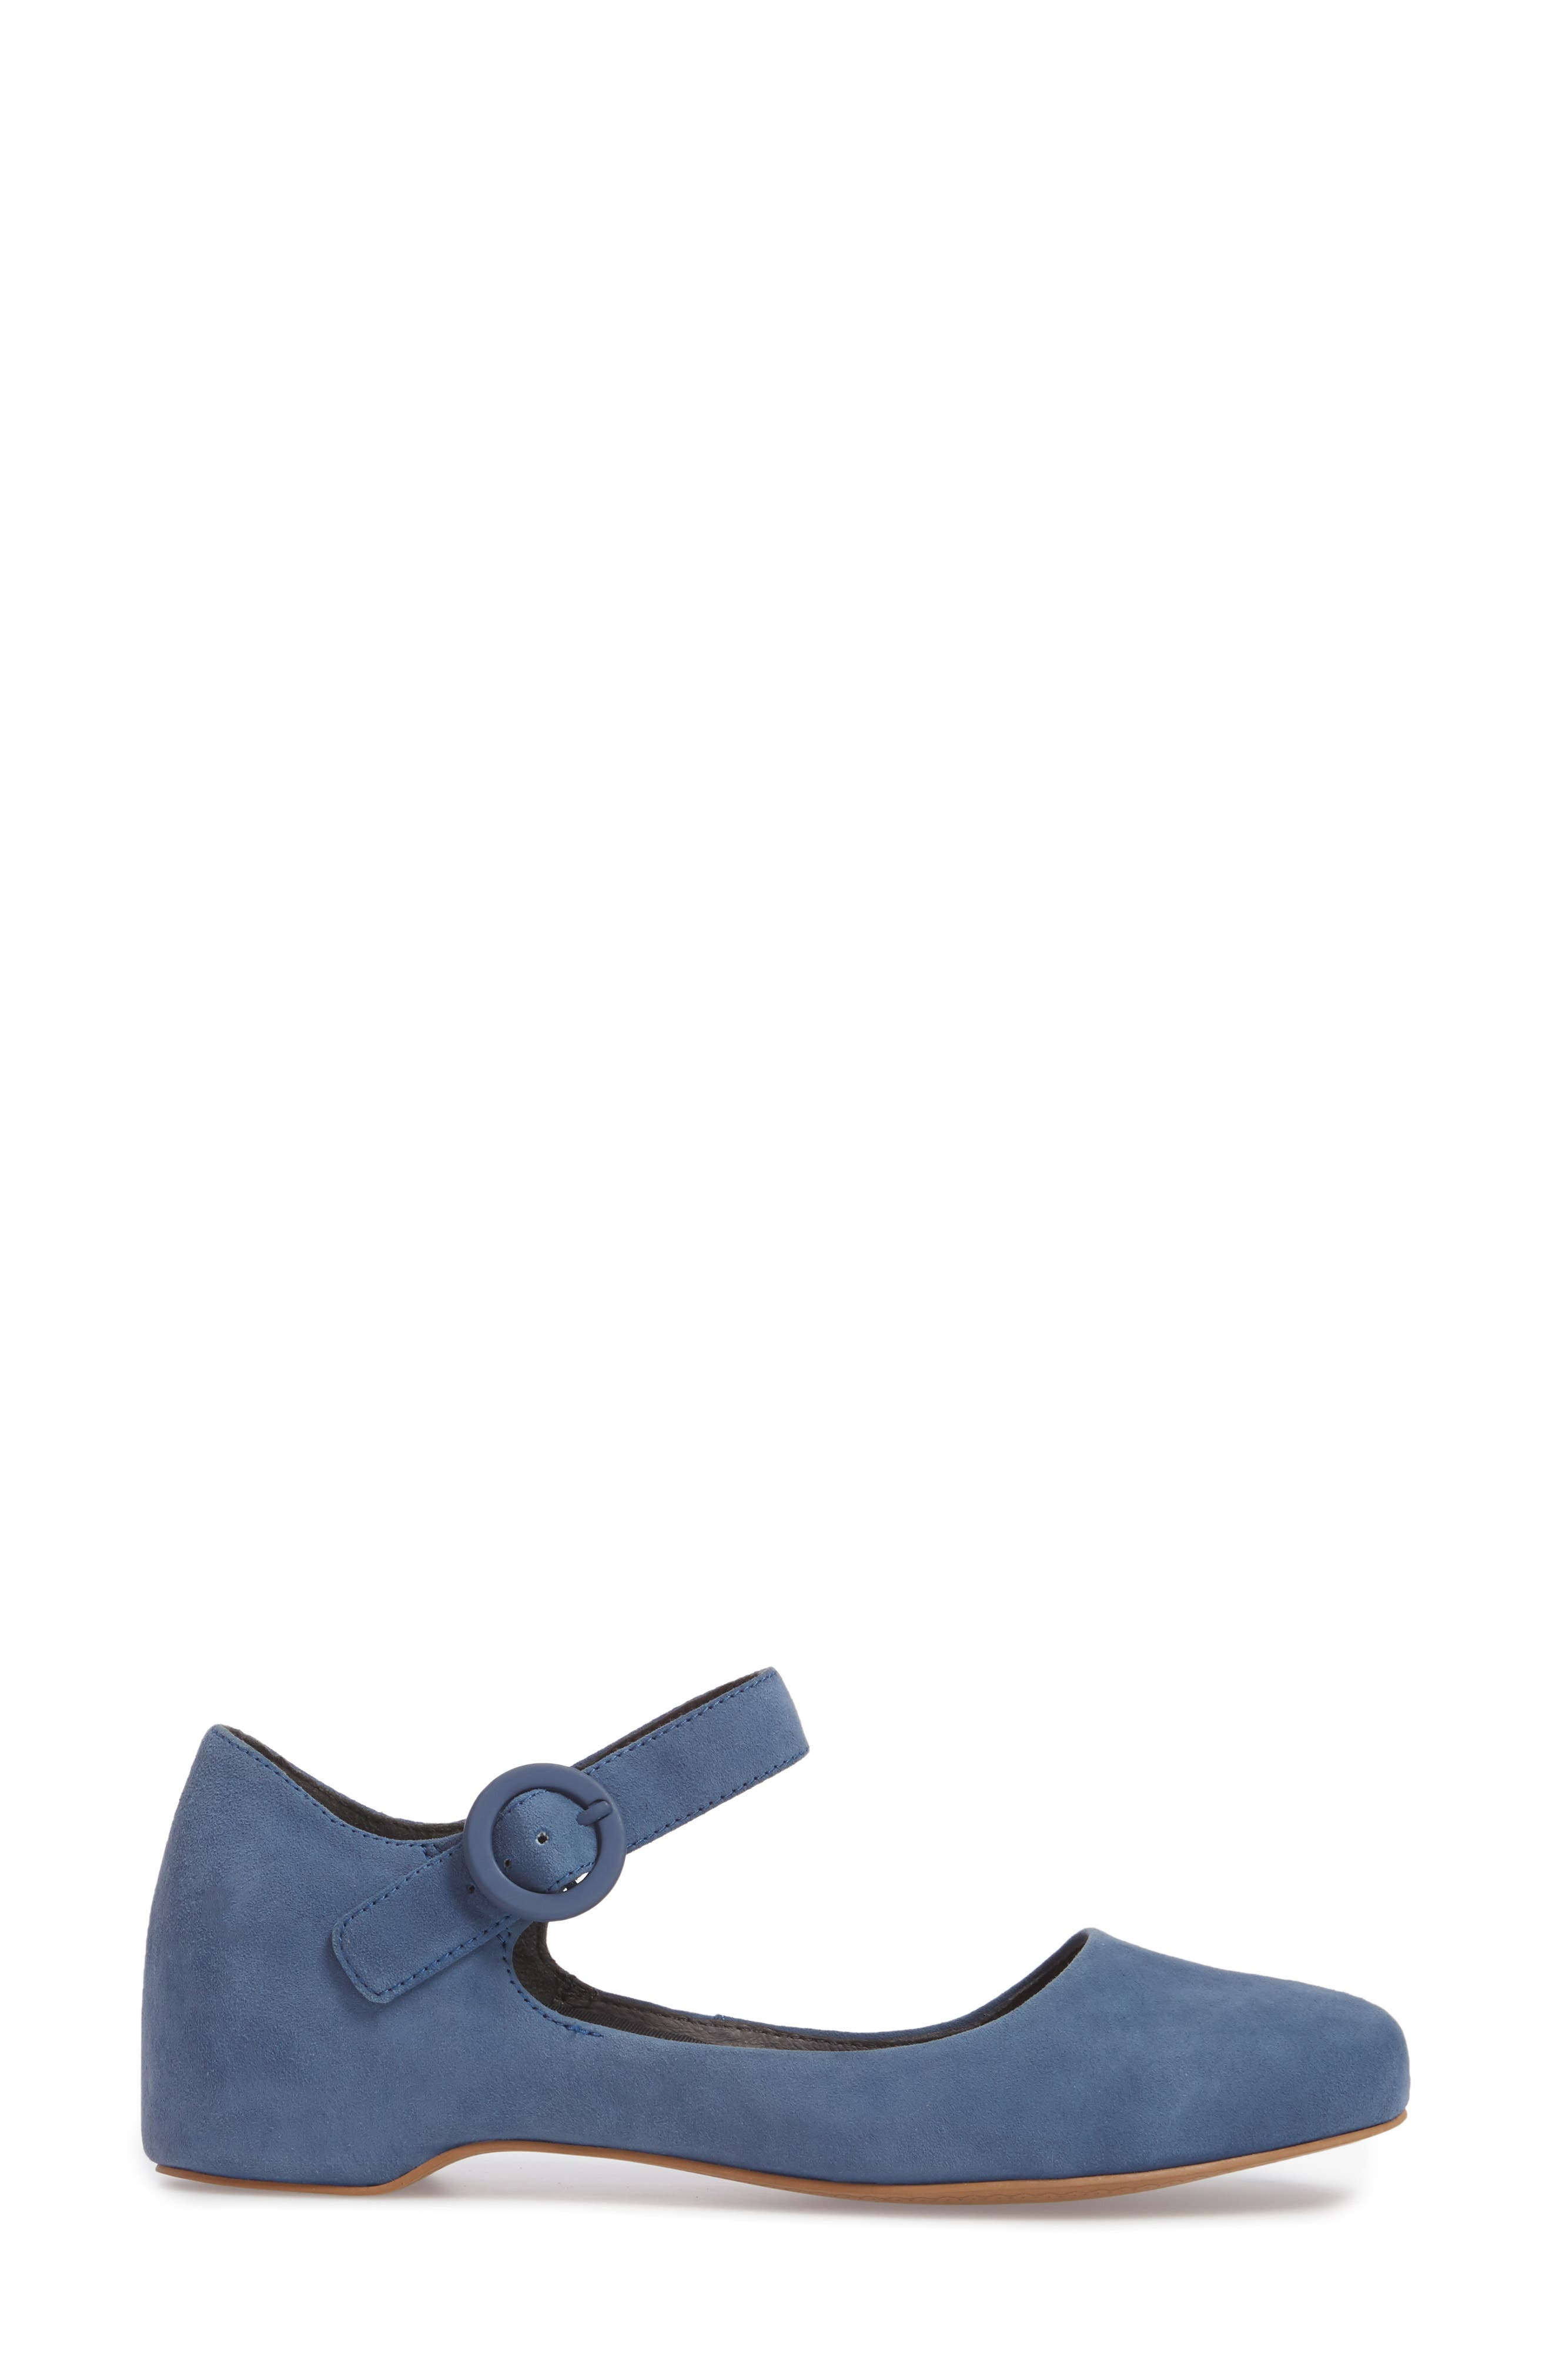 Serena Mary Jane Flat,                             Alternate thumbnail 3, color,                             Bright Blue Suede